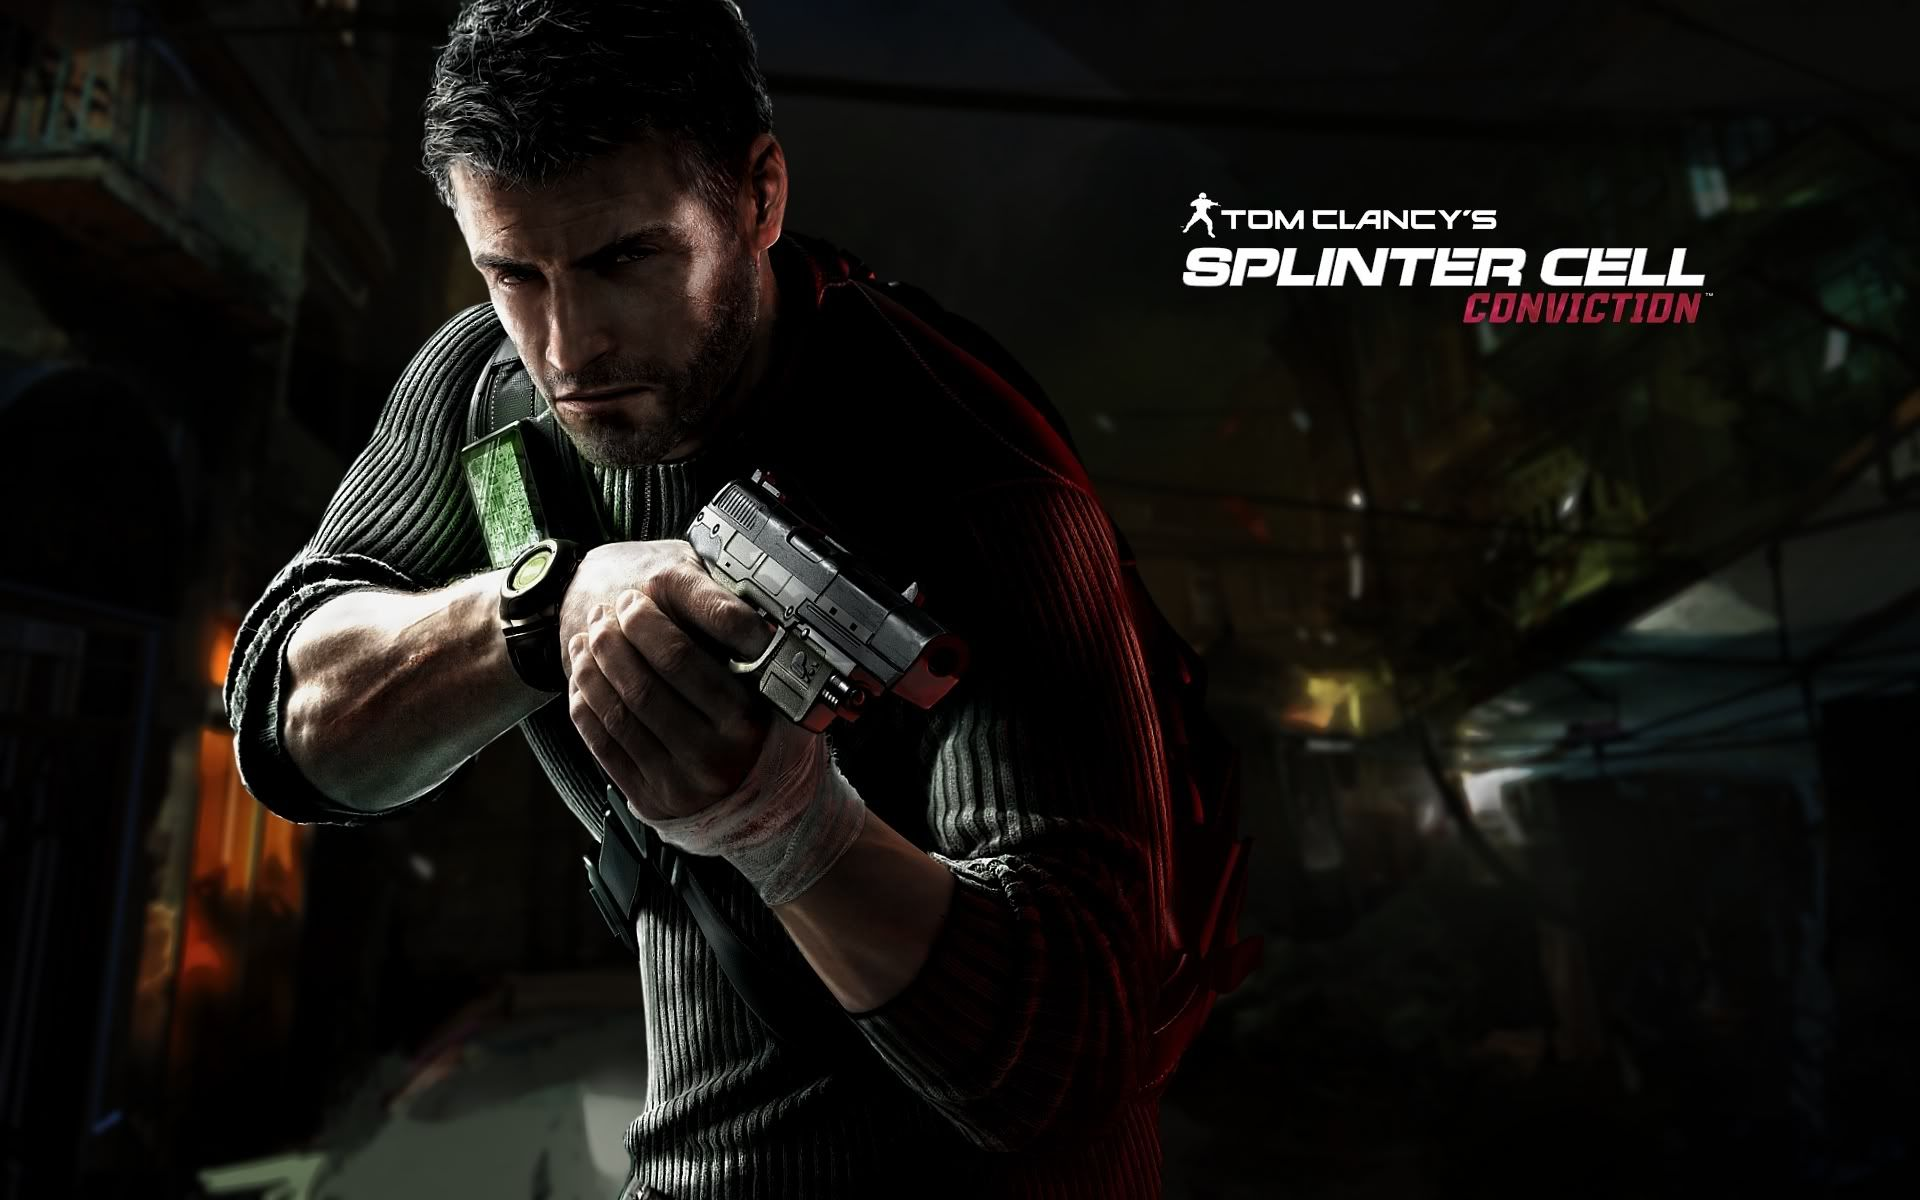 Tom Clancys Splinter Cell Wallpapers Top Free Tom